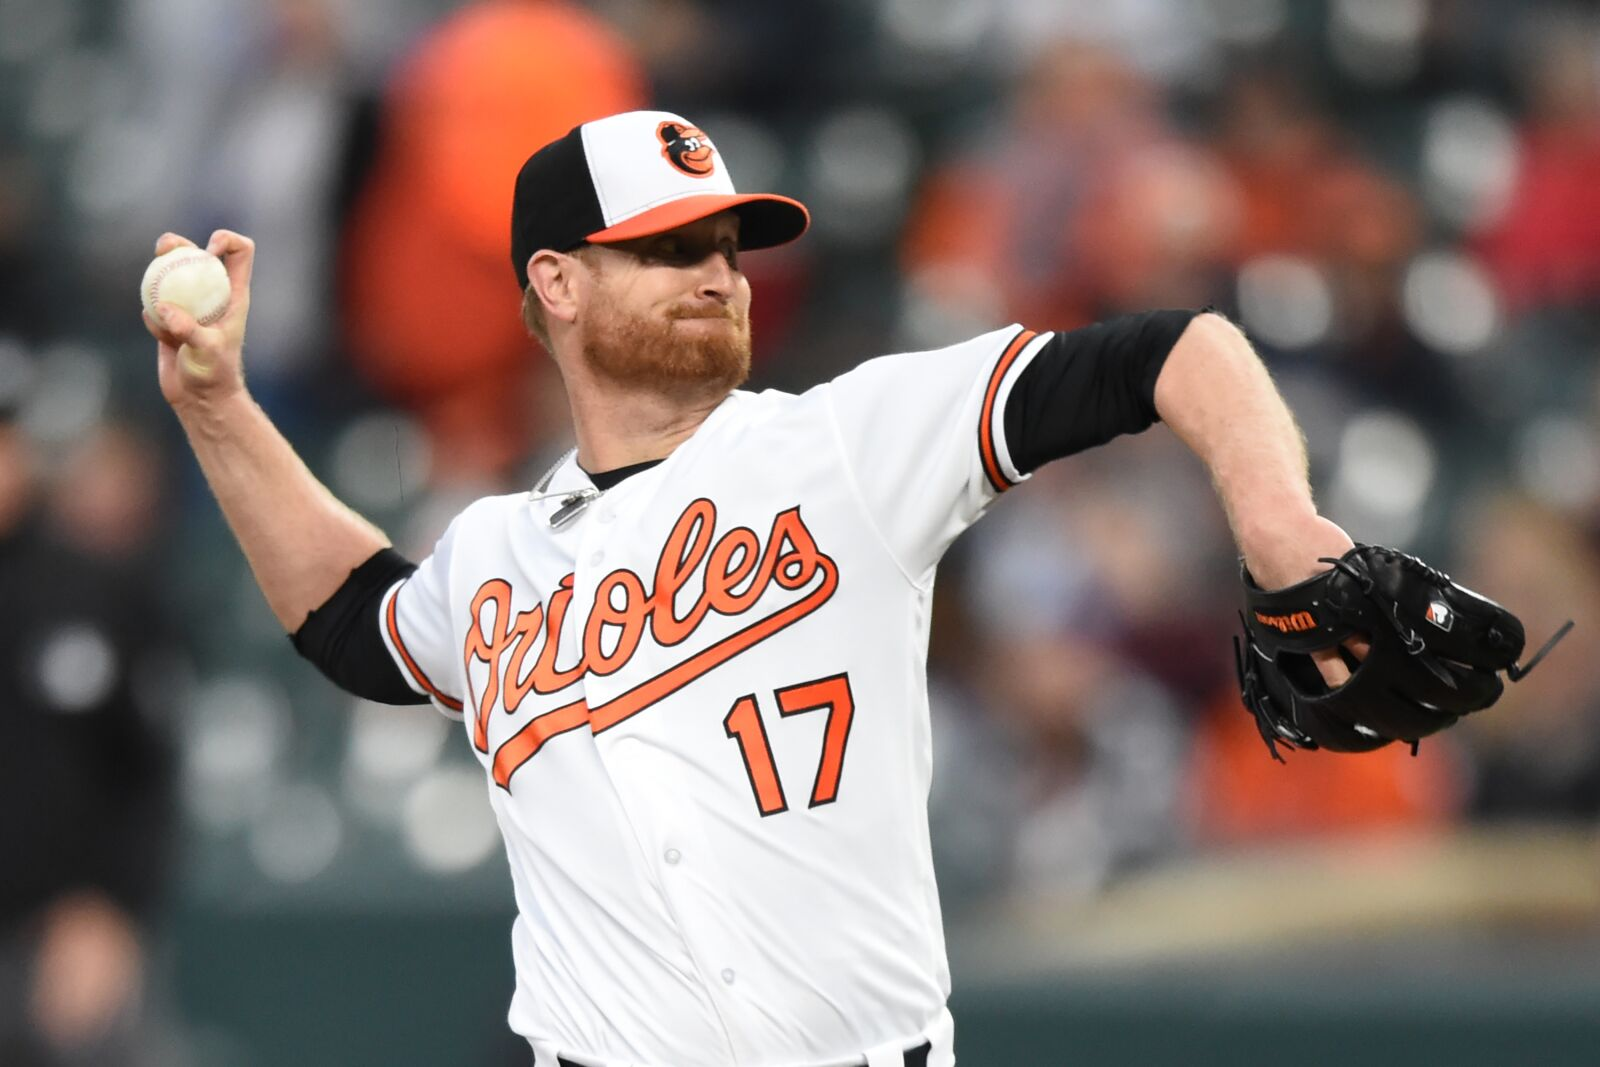 Baltimore Orioles: Alex Cobb Named 2019 Opening Day Starter